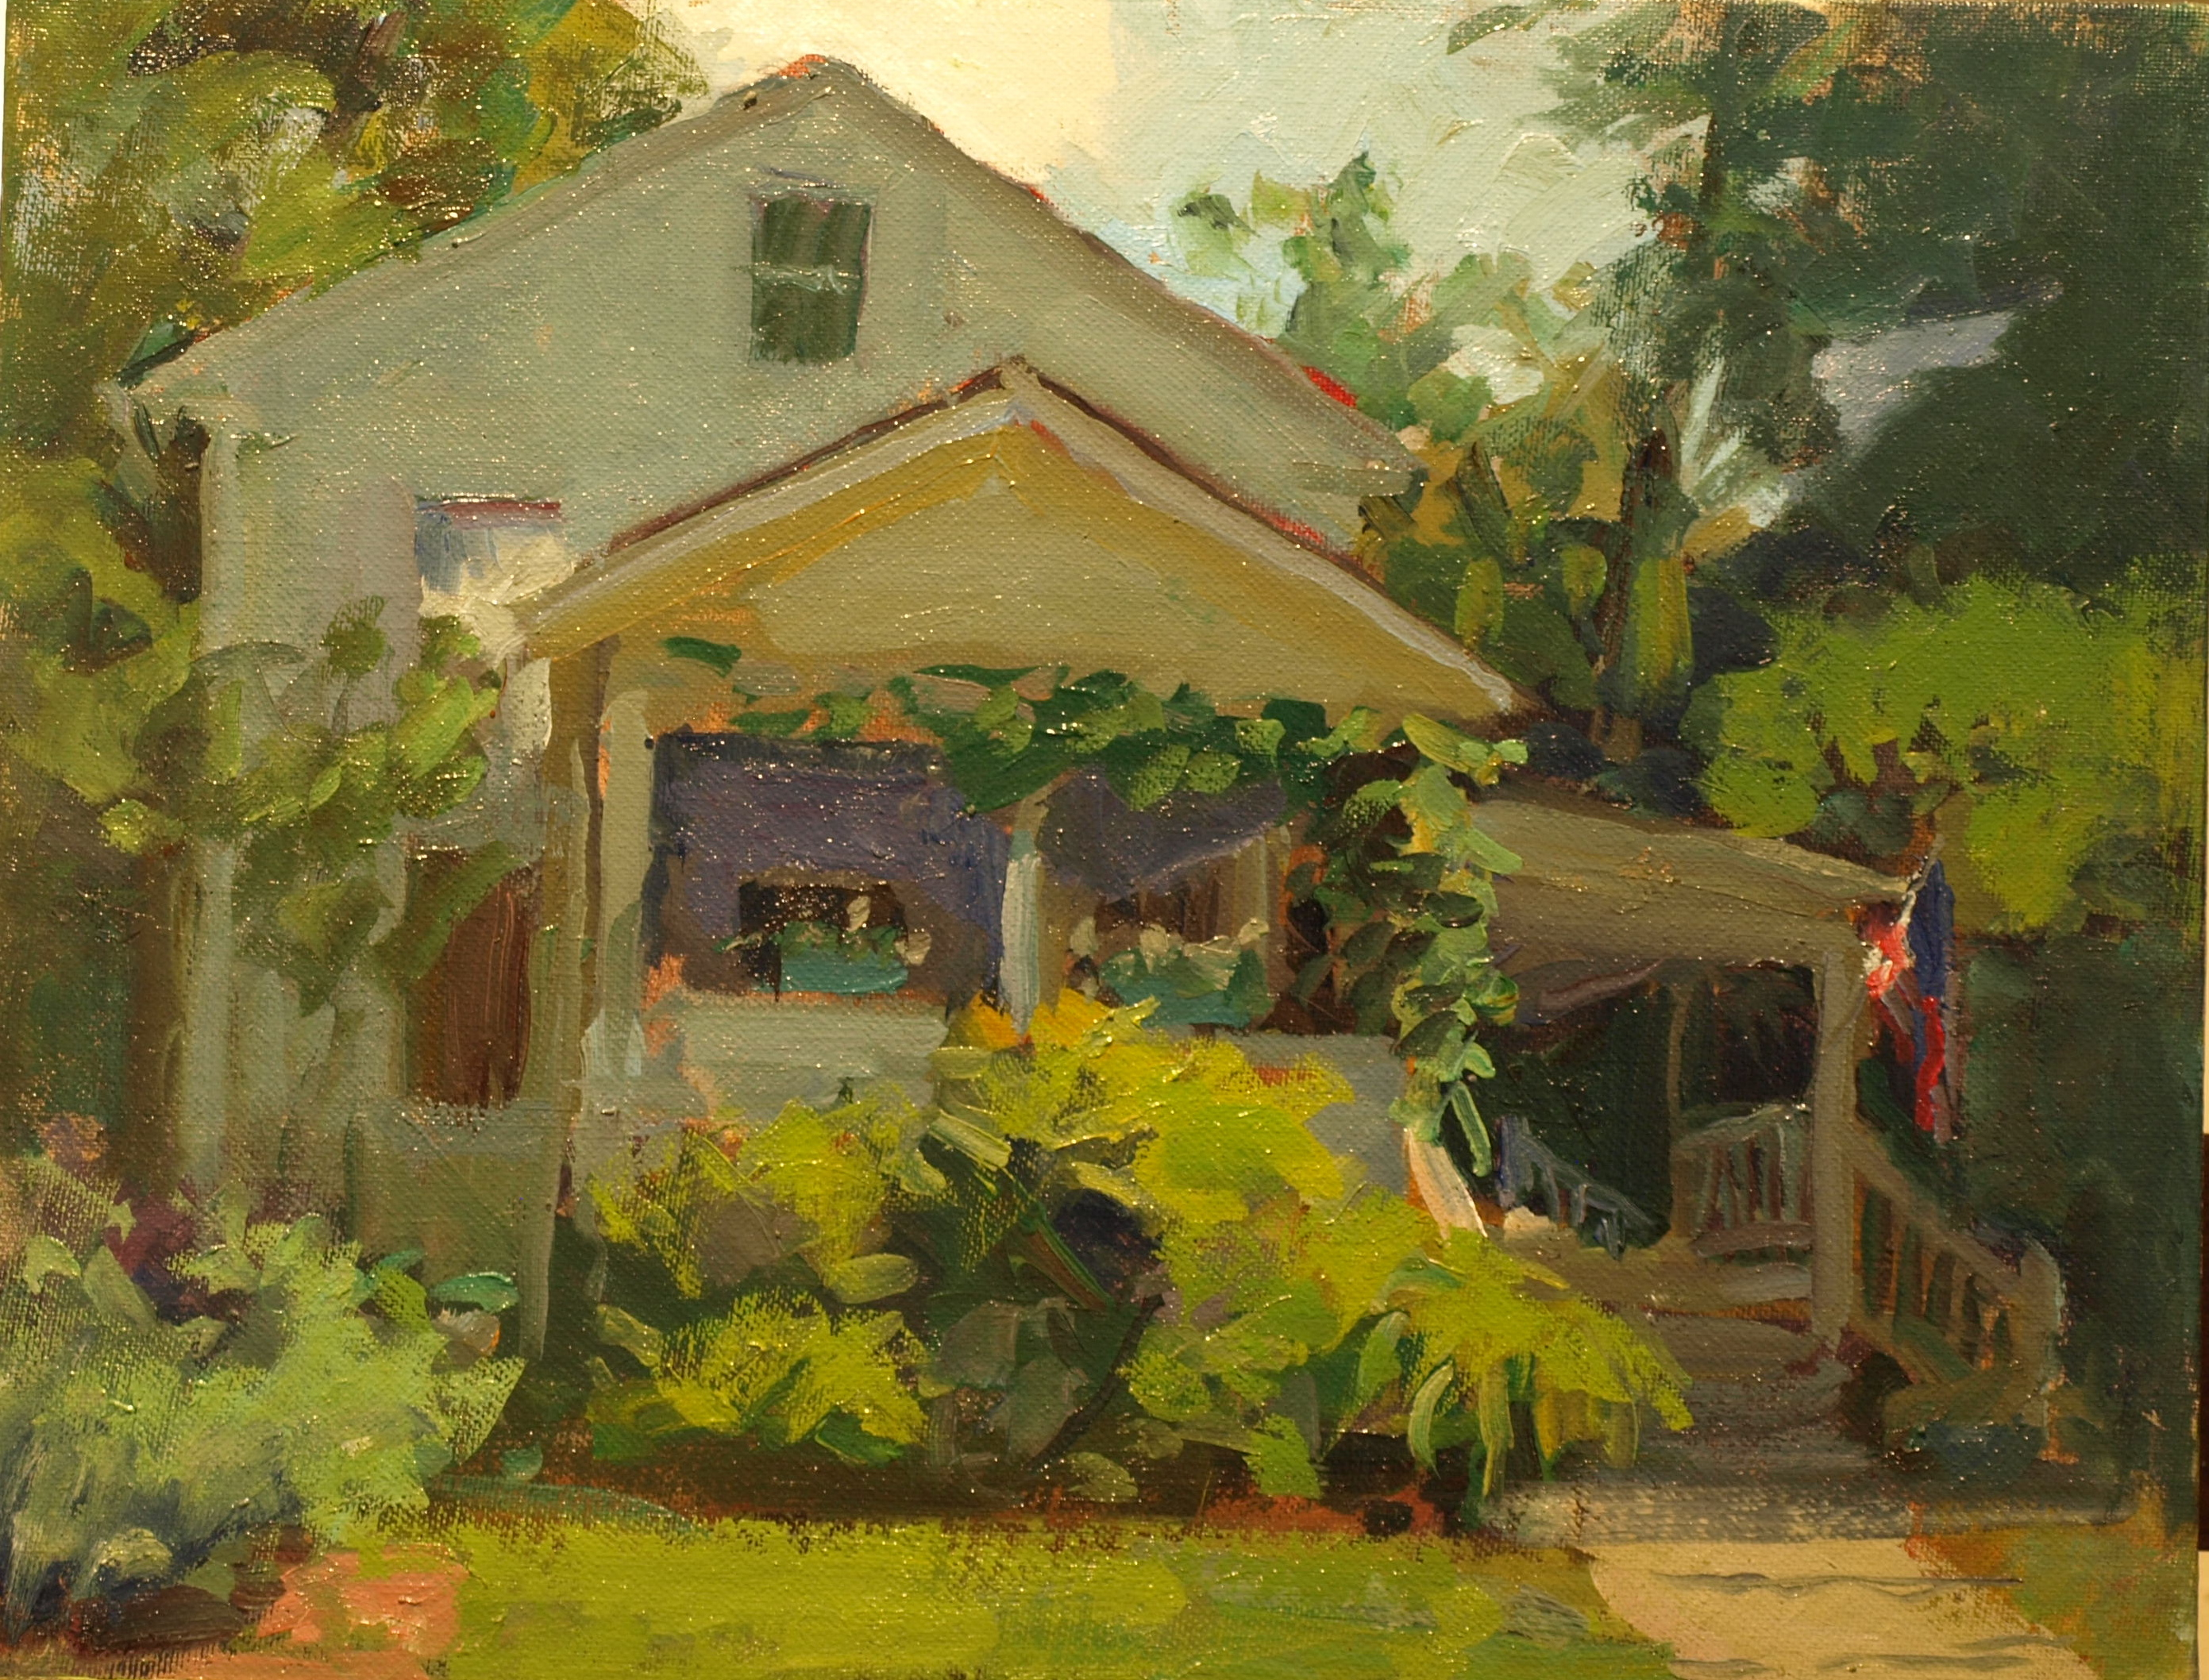 House in Shadow, Oil on Panel, 11 x 14 Inches, by Susan Grisell, $275